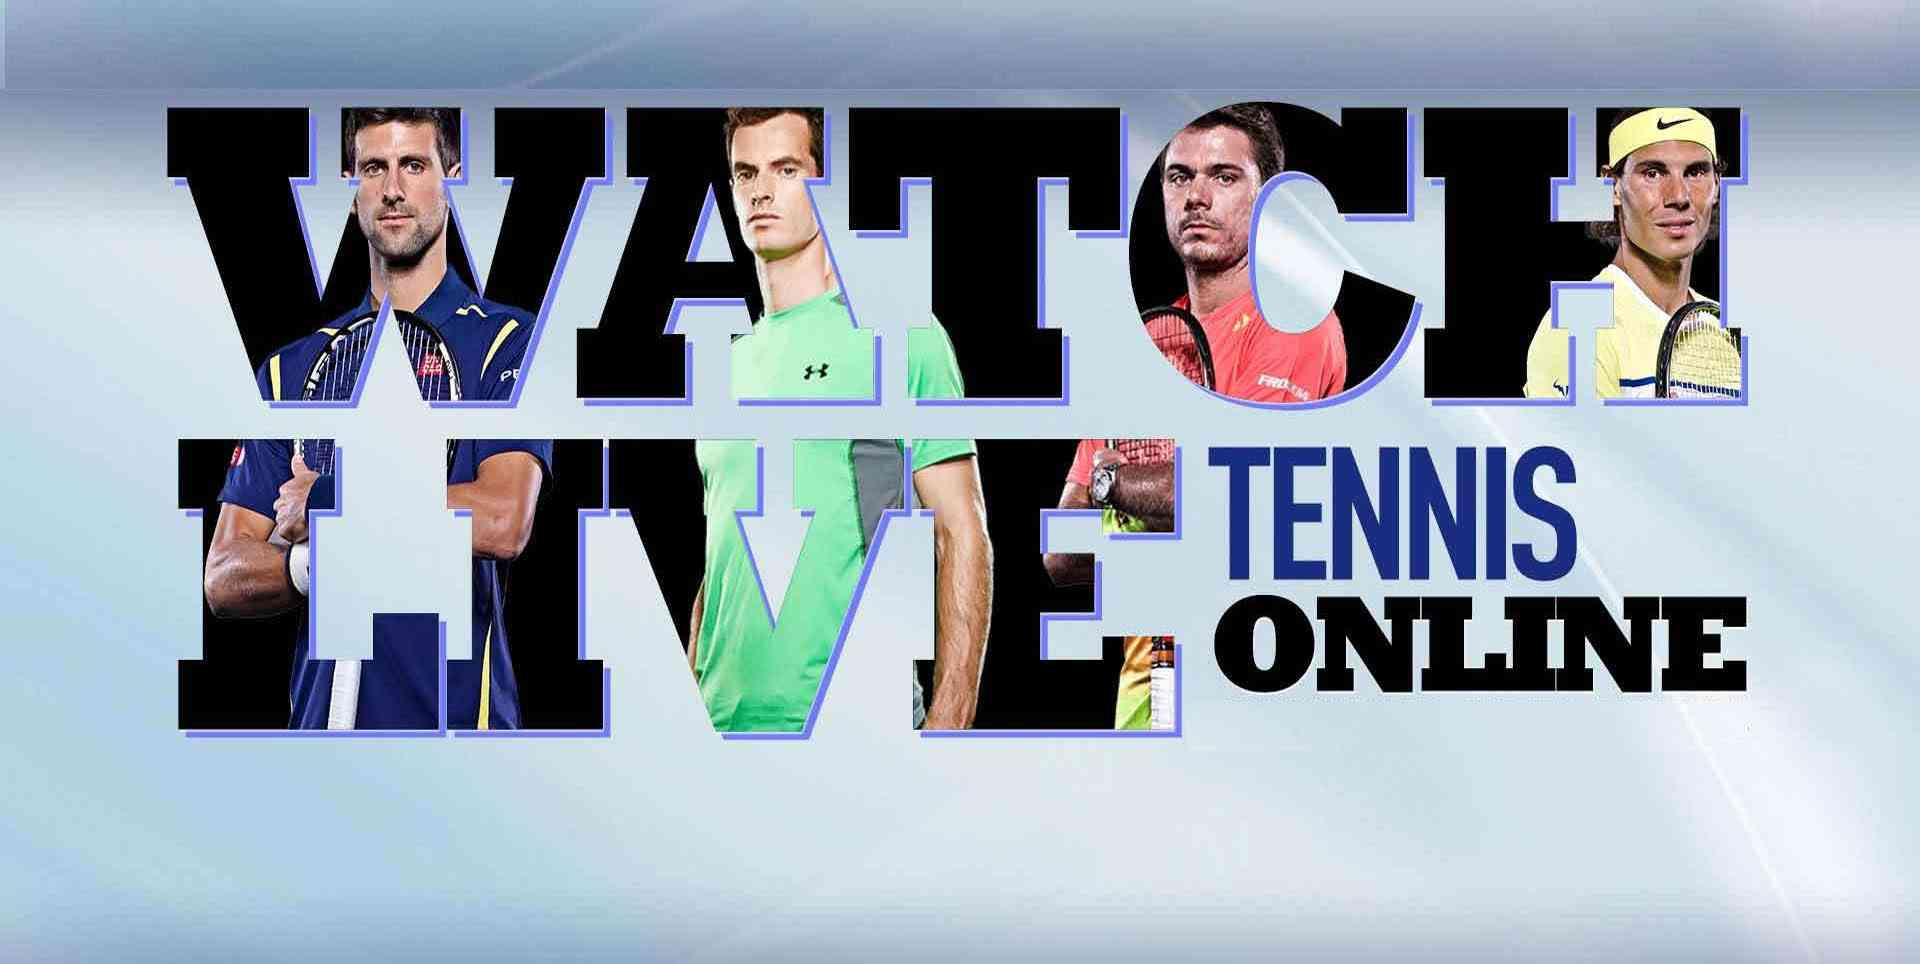 watch-2nd-round-t.-berdych-vs-a.-nedovyesovr-online